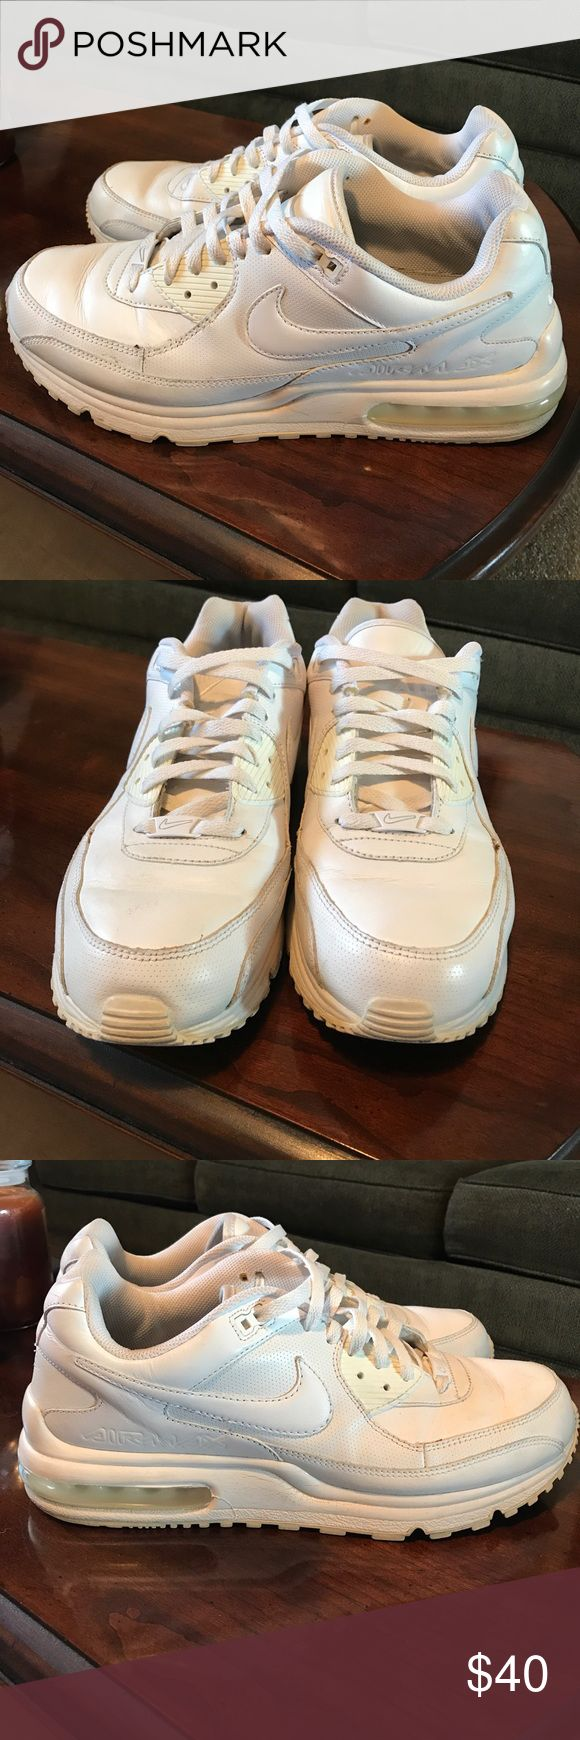 Nike Air Max Wright, 12 Men's Nike Air Max Wright, size 12. Used but still in great condition Nike Shoes Sneakers